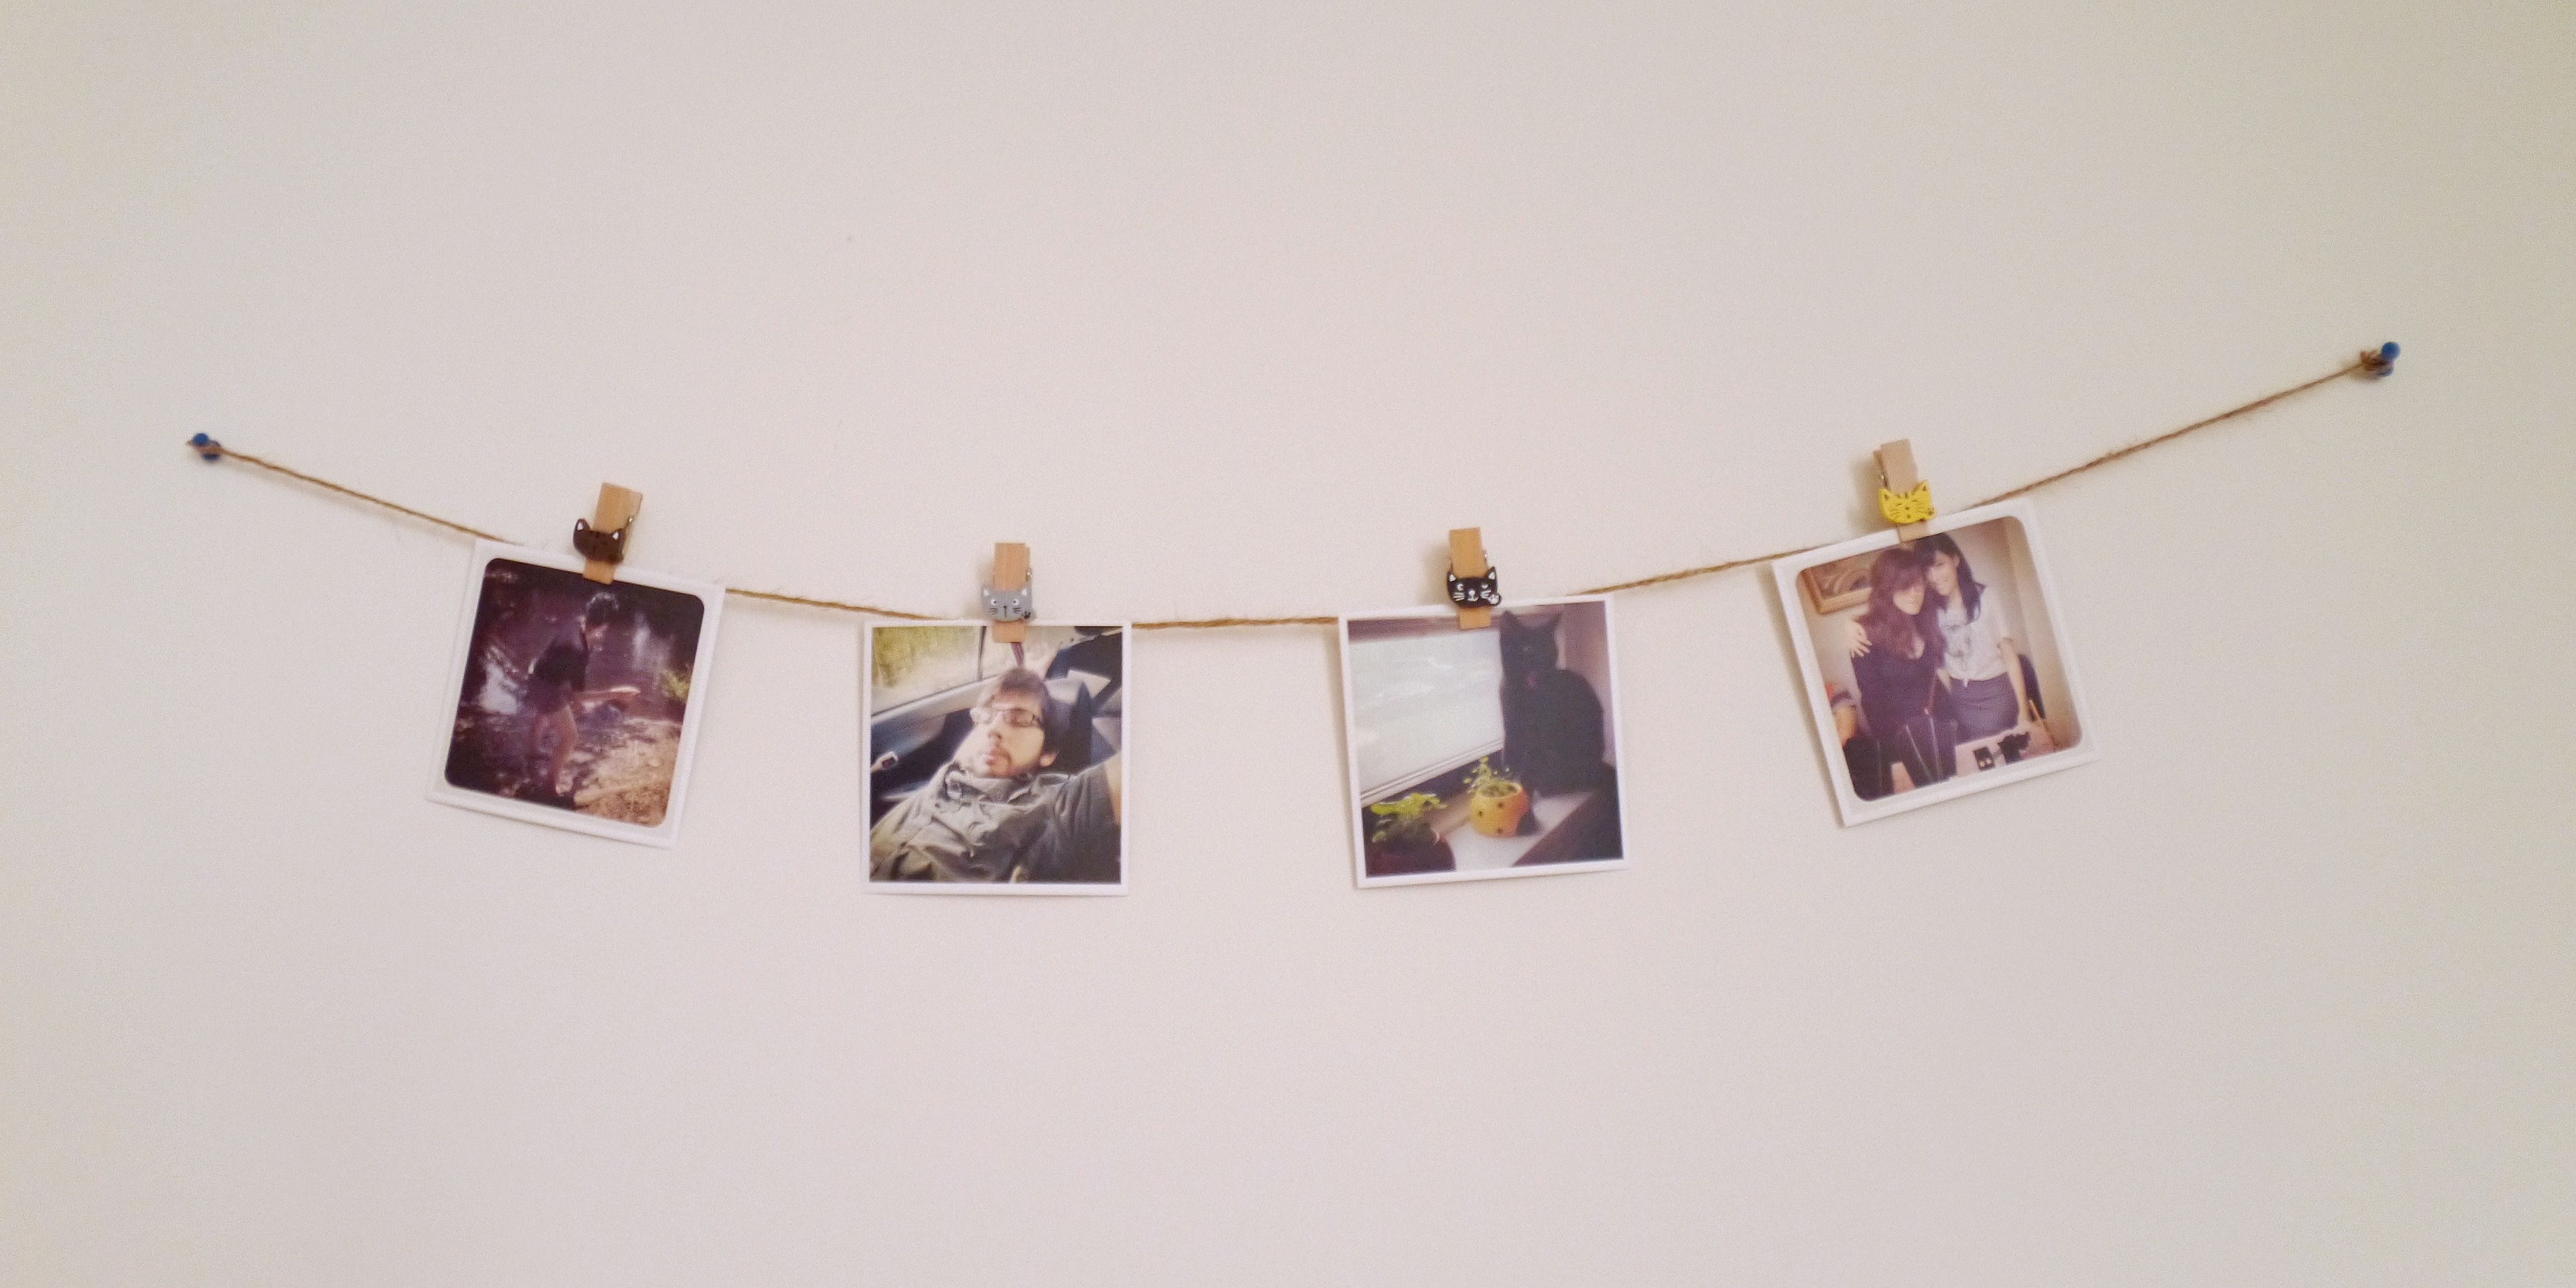 Polaroid tumblr google search polaroid - Polaroid fotos deko ...